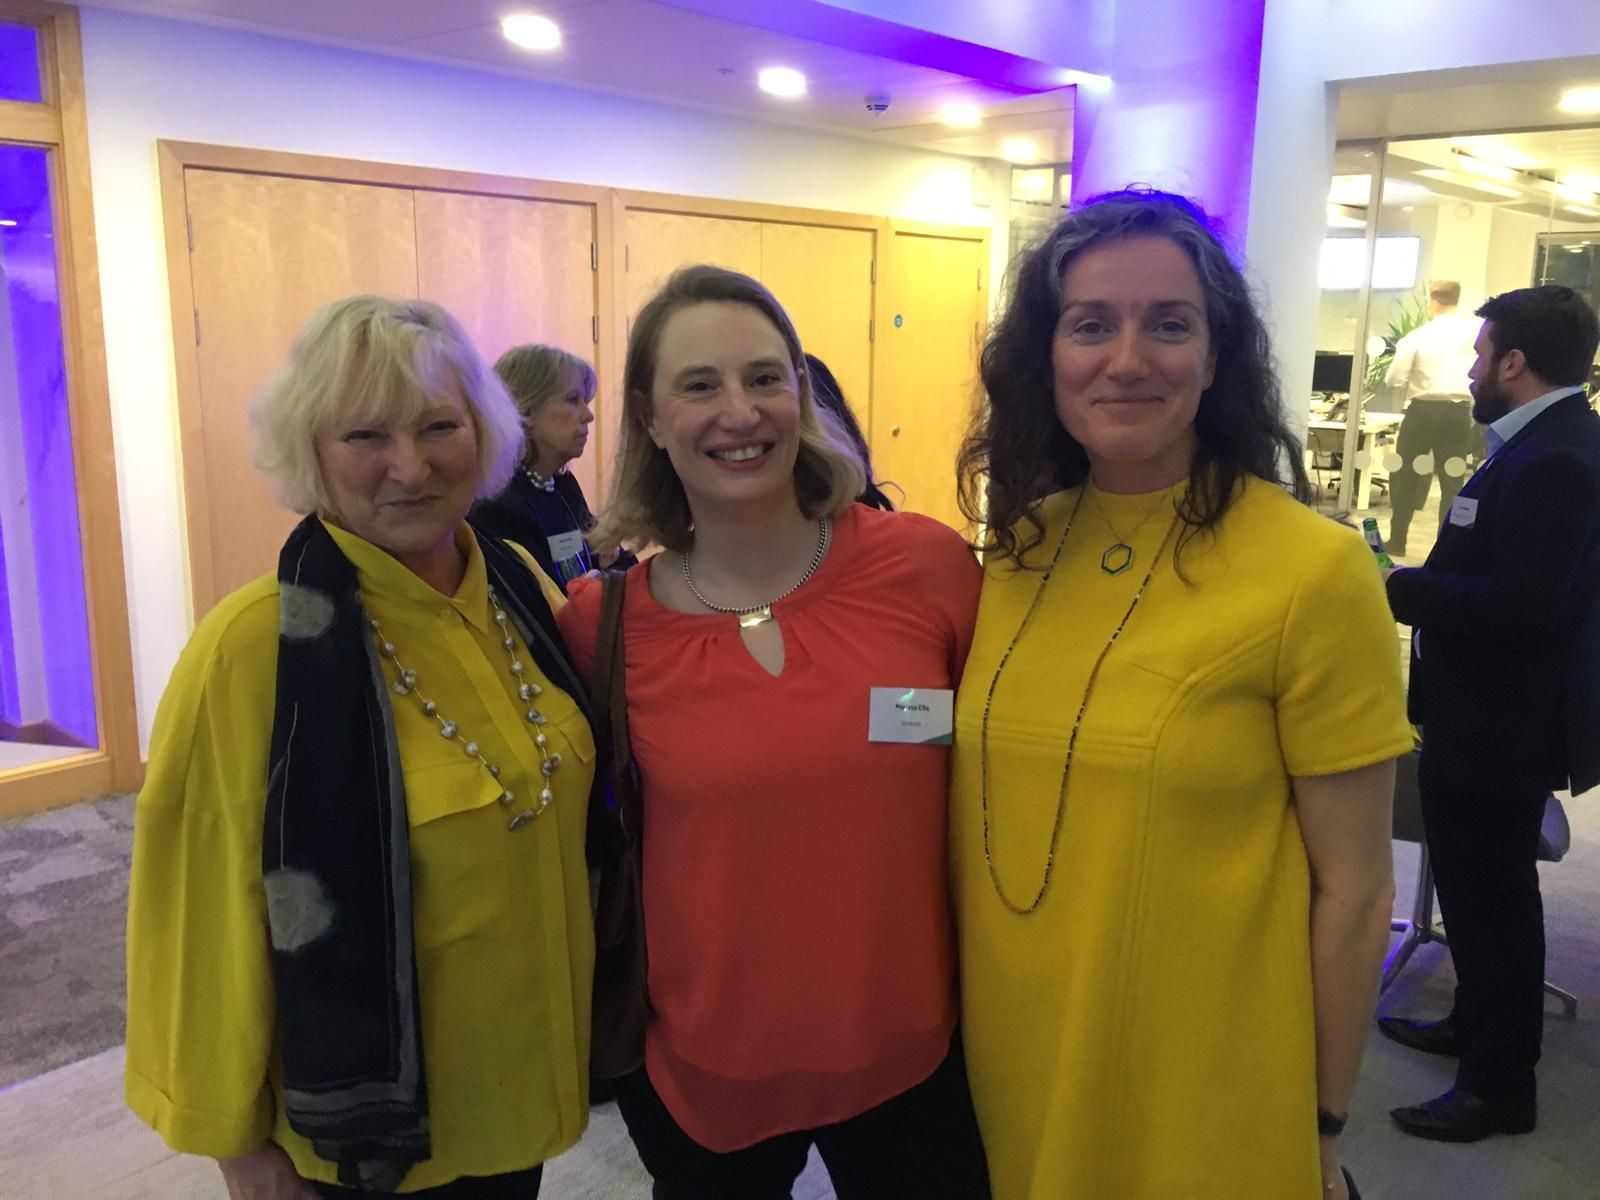 Winners wear yellow 😀 Prof Christine Bamford winner of